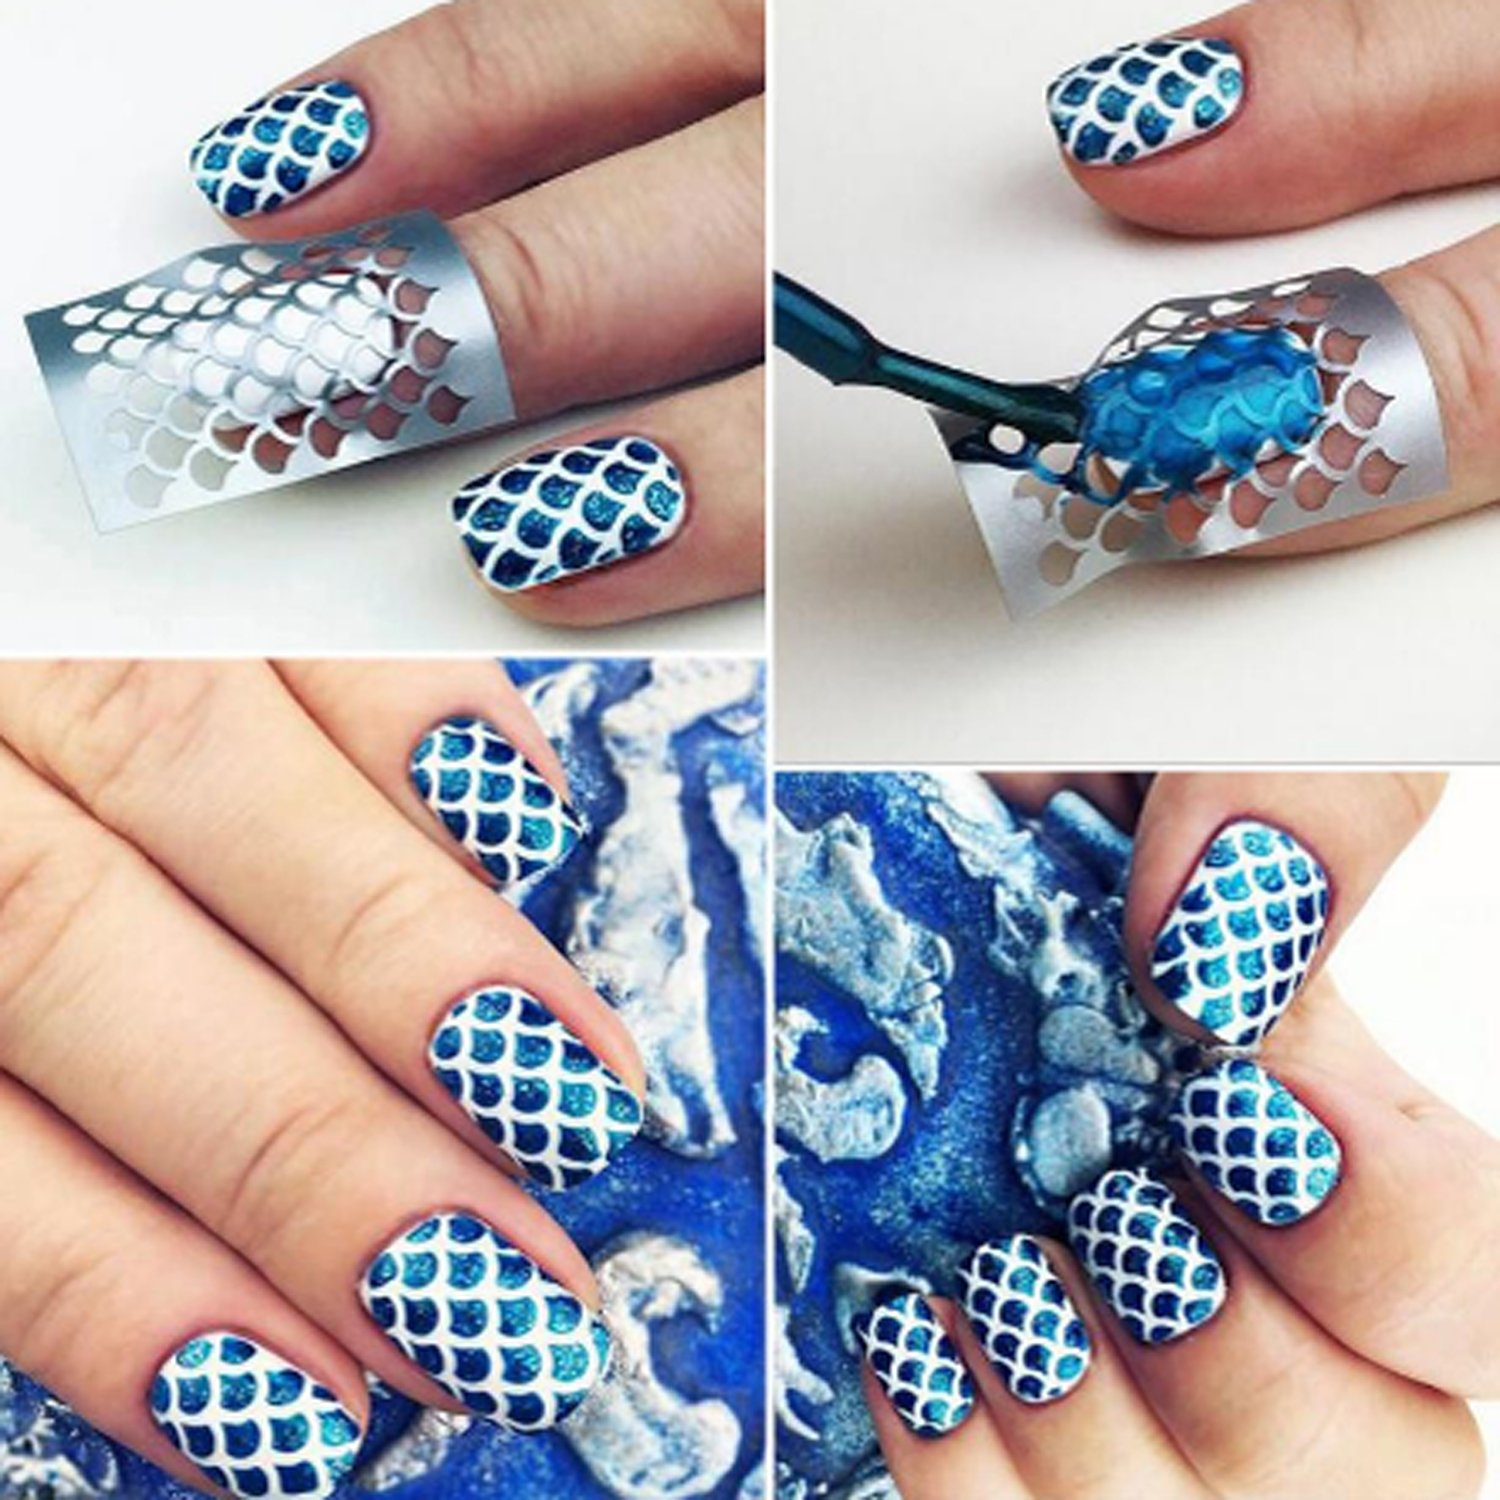 Colossal Ship 72 Different Designs Nail Vinyls Stencils Nails